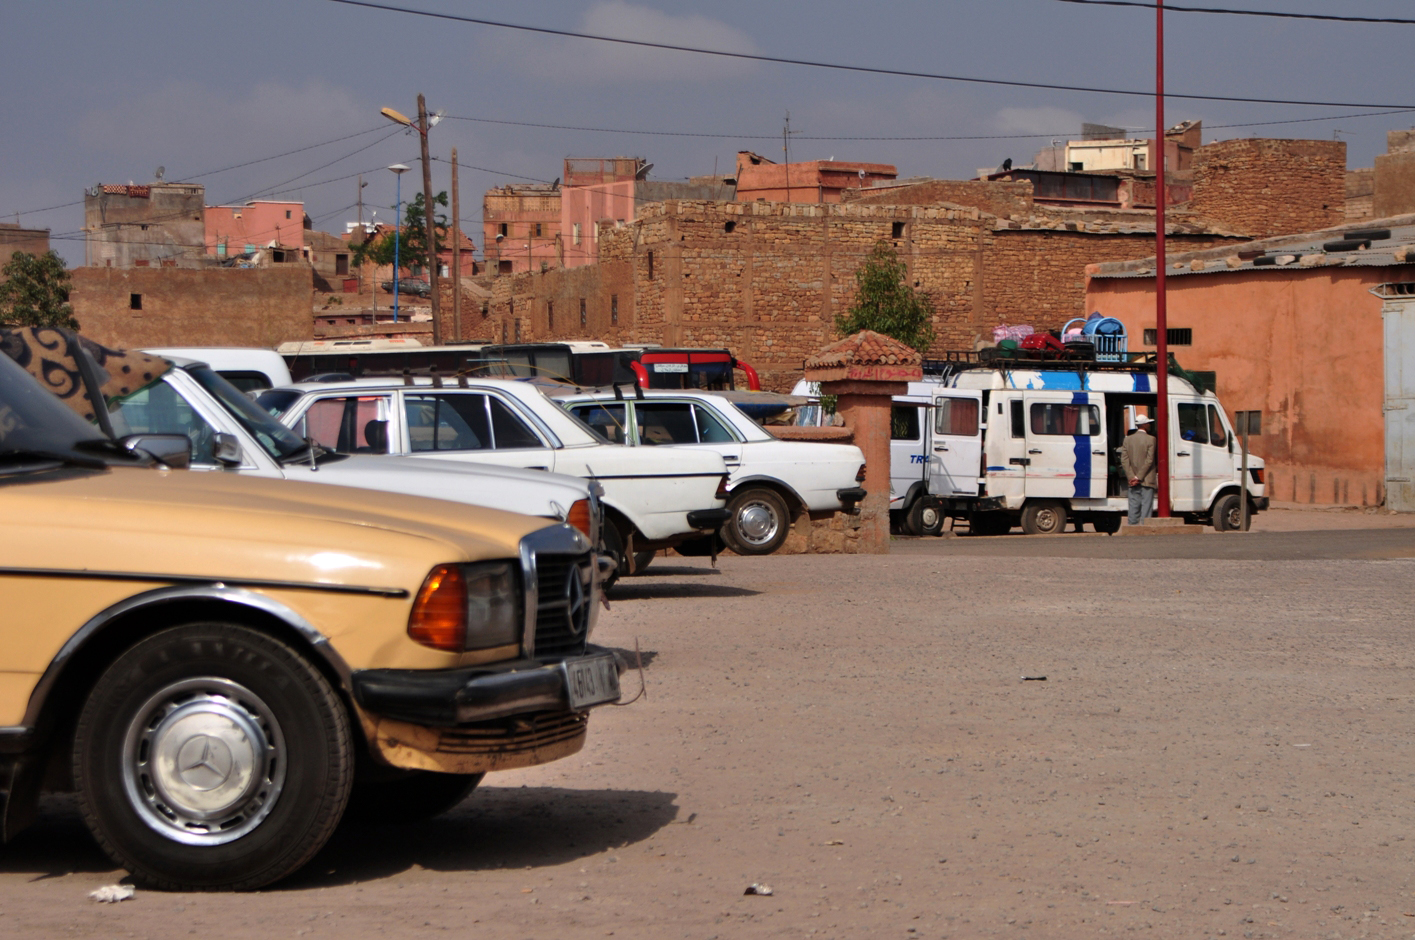 The grand (shared) taxi station in Azilal